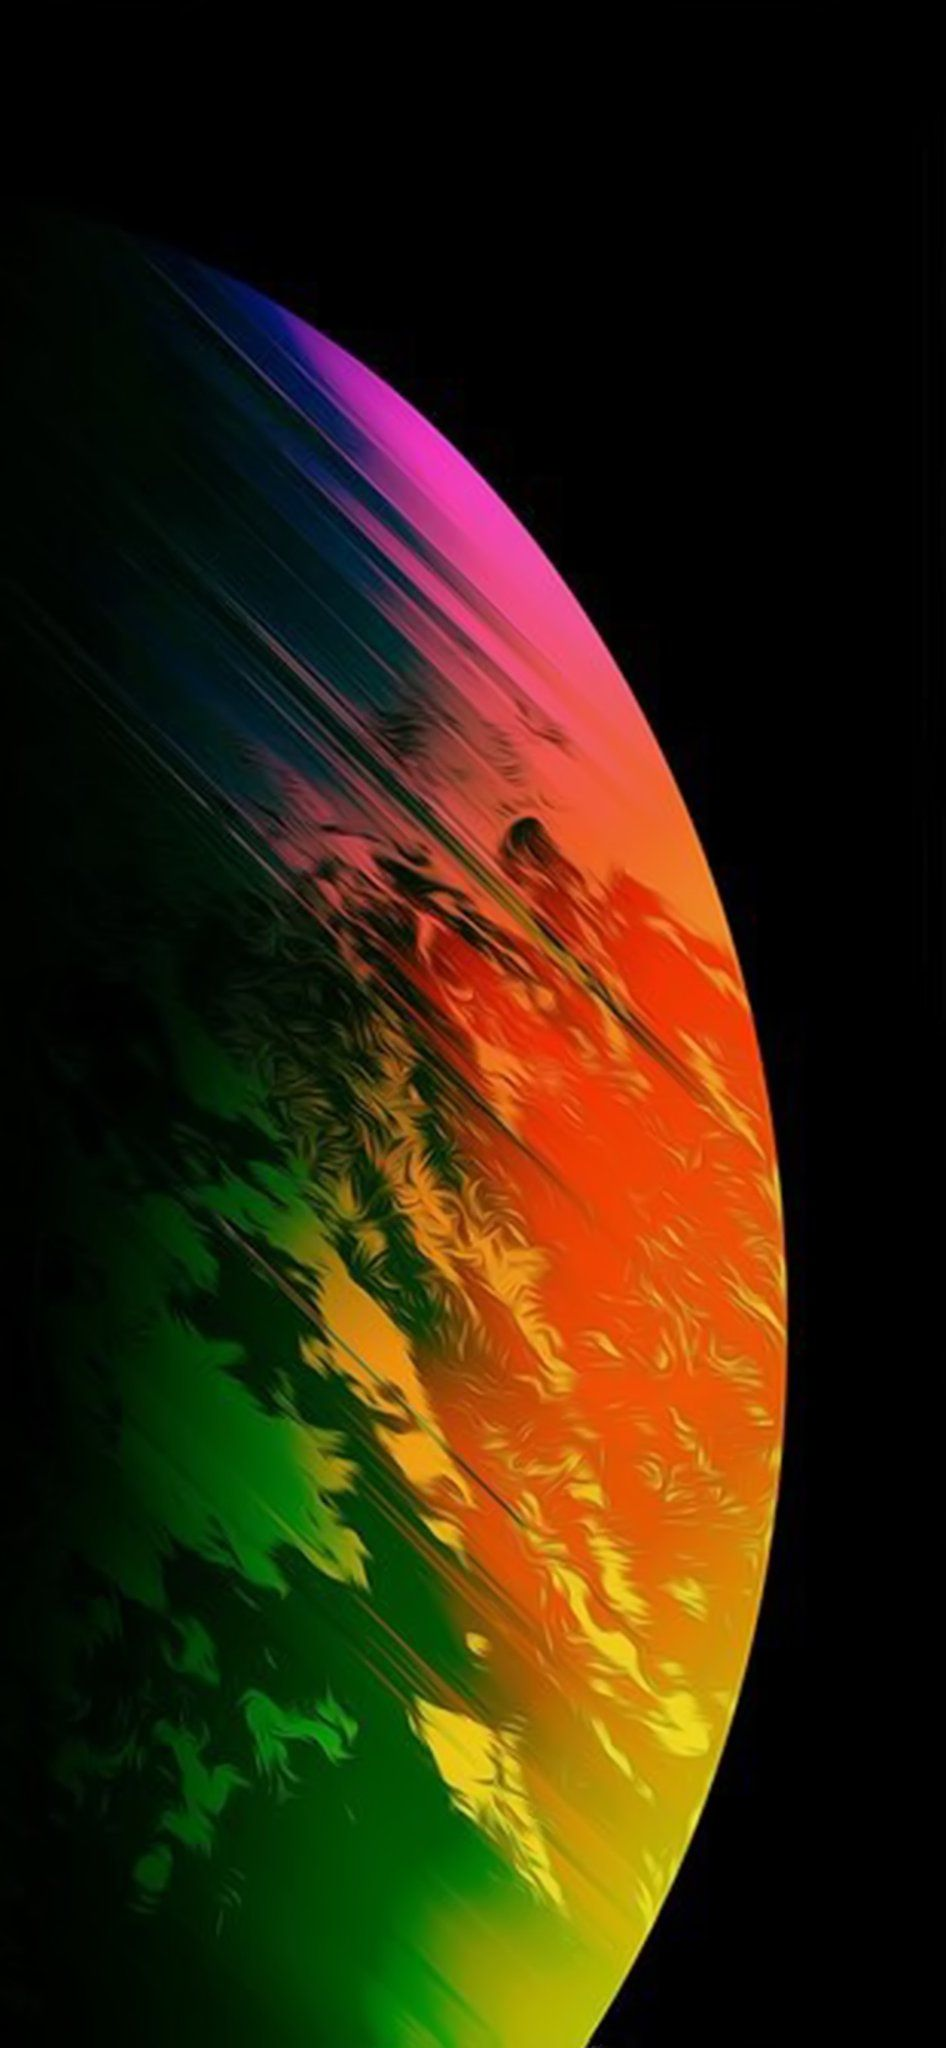 Empirewalls On Twitter Iphonex Iphonexs Iphonexr Ios12 Mojave Lockscreen Homescreen Uidesign B Iphone Wallpaper Planets Wallpaper Android Wallpaper